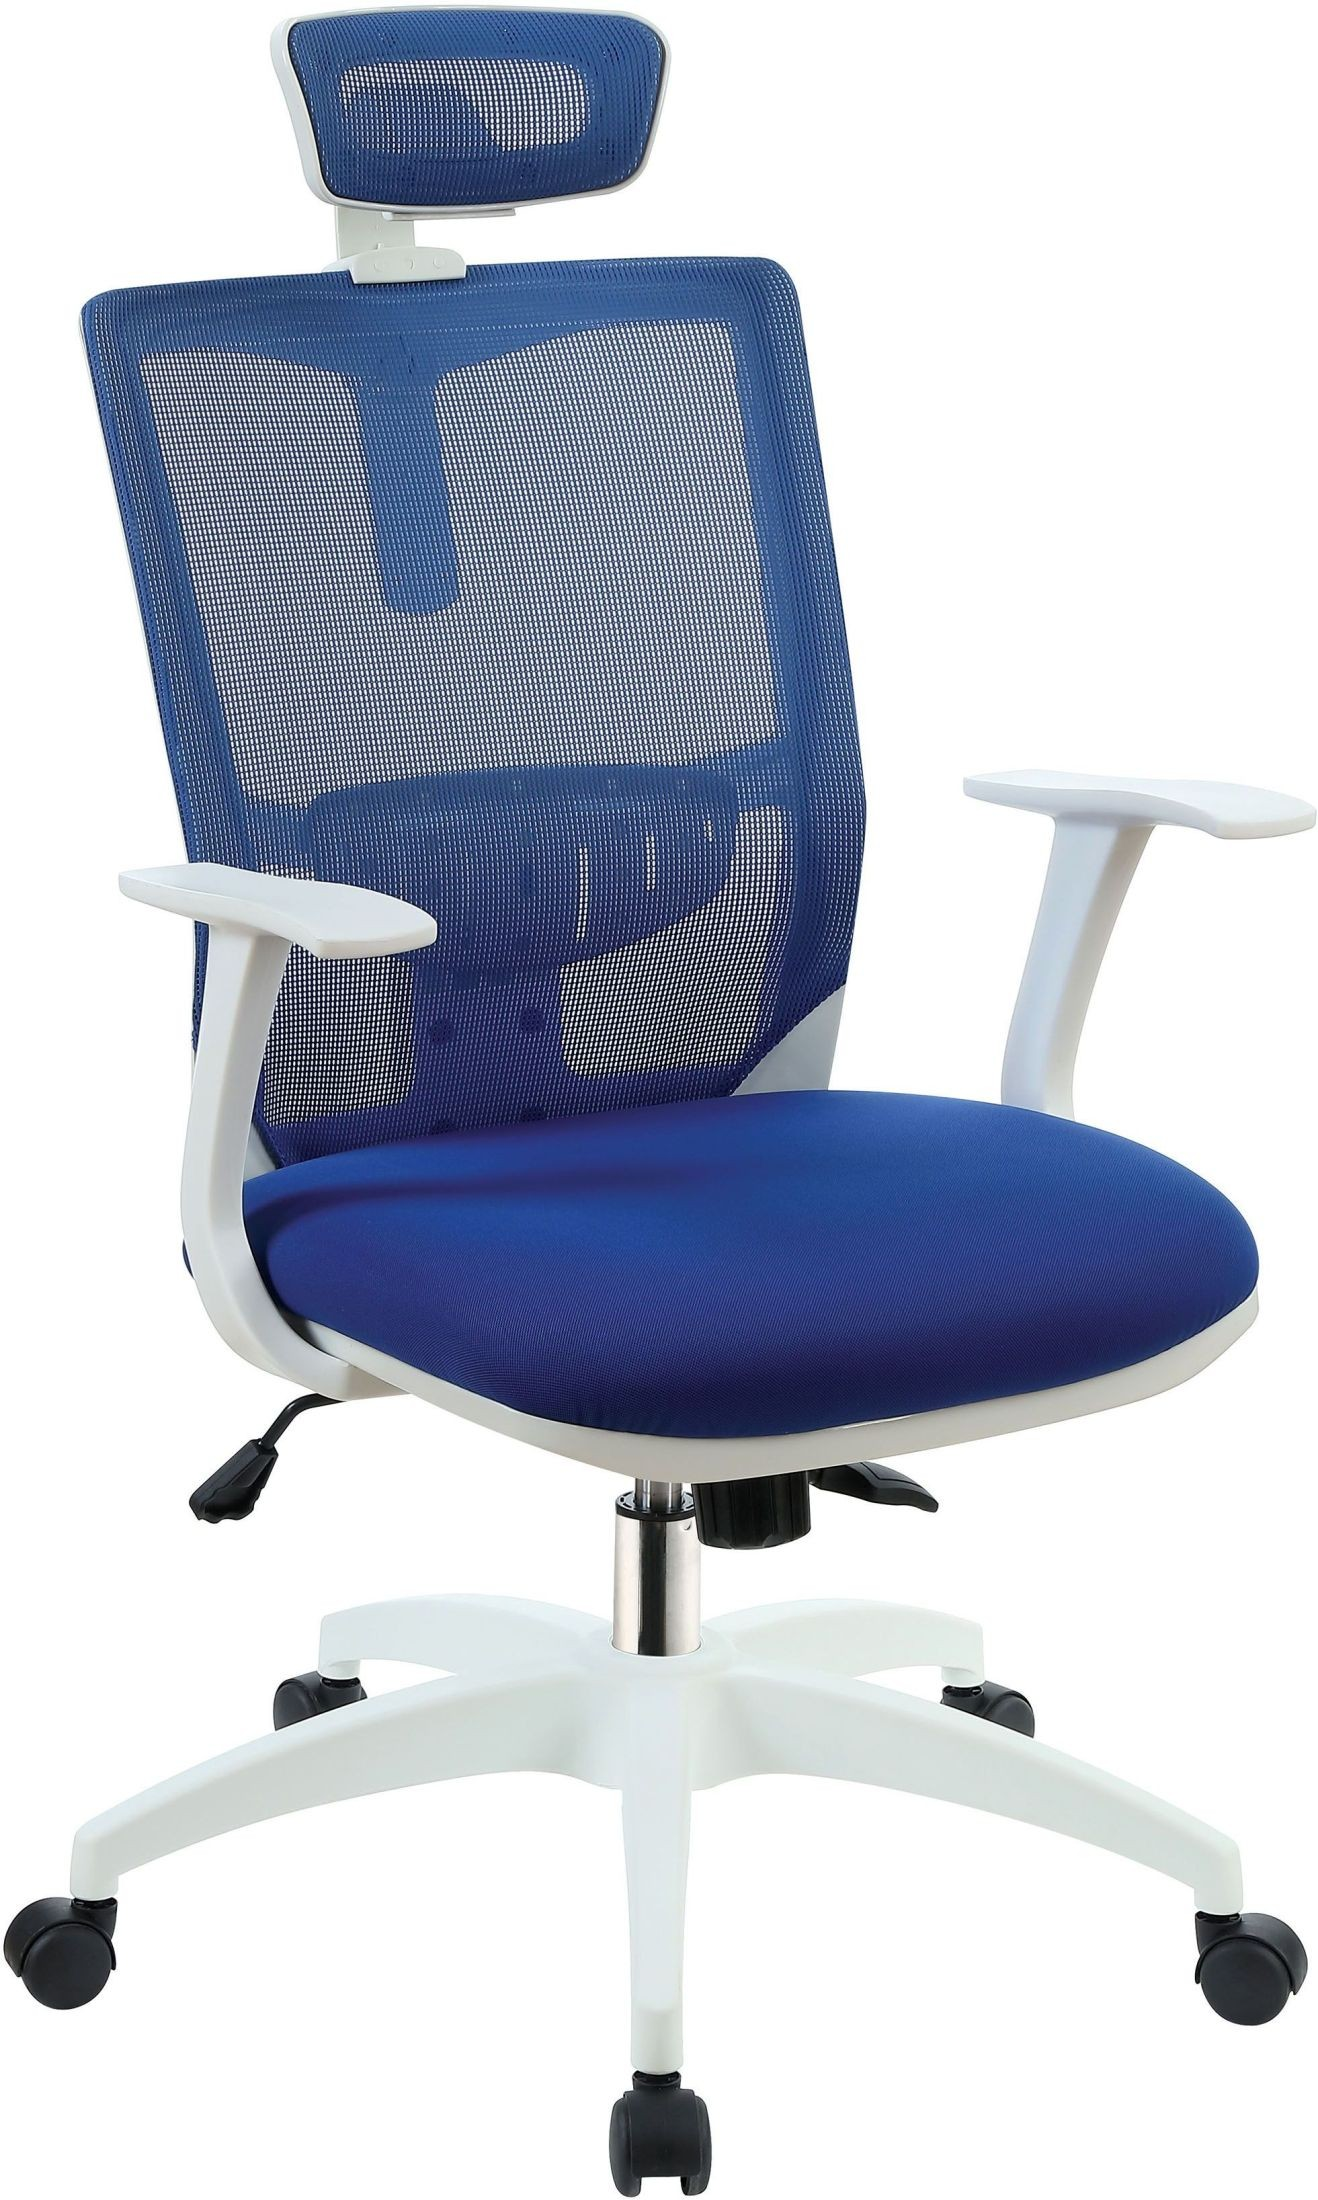 Sargas blue office chair from furniture of america for Blue office chair